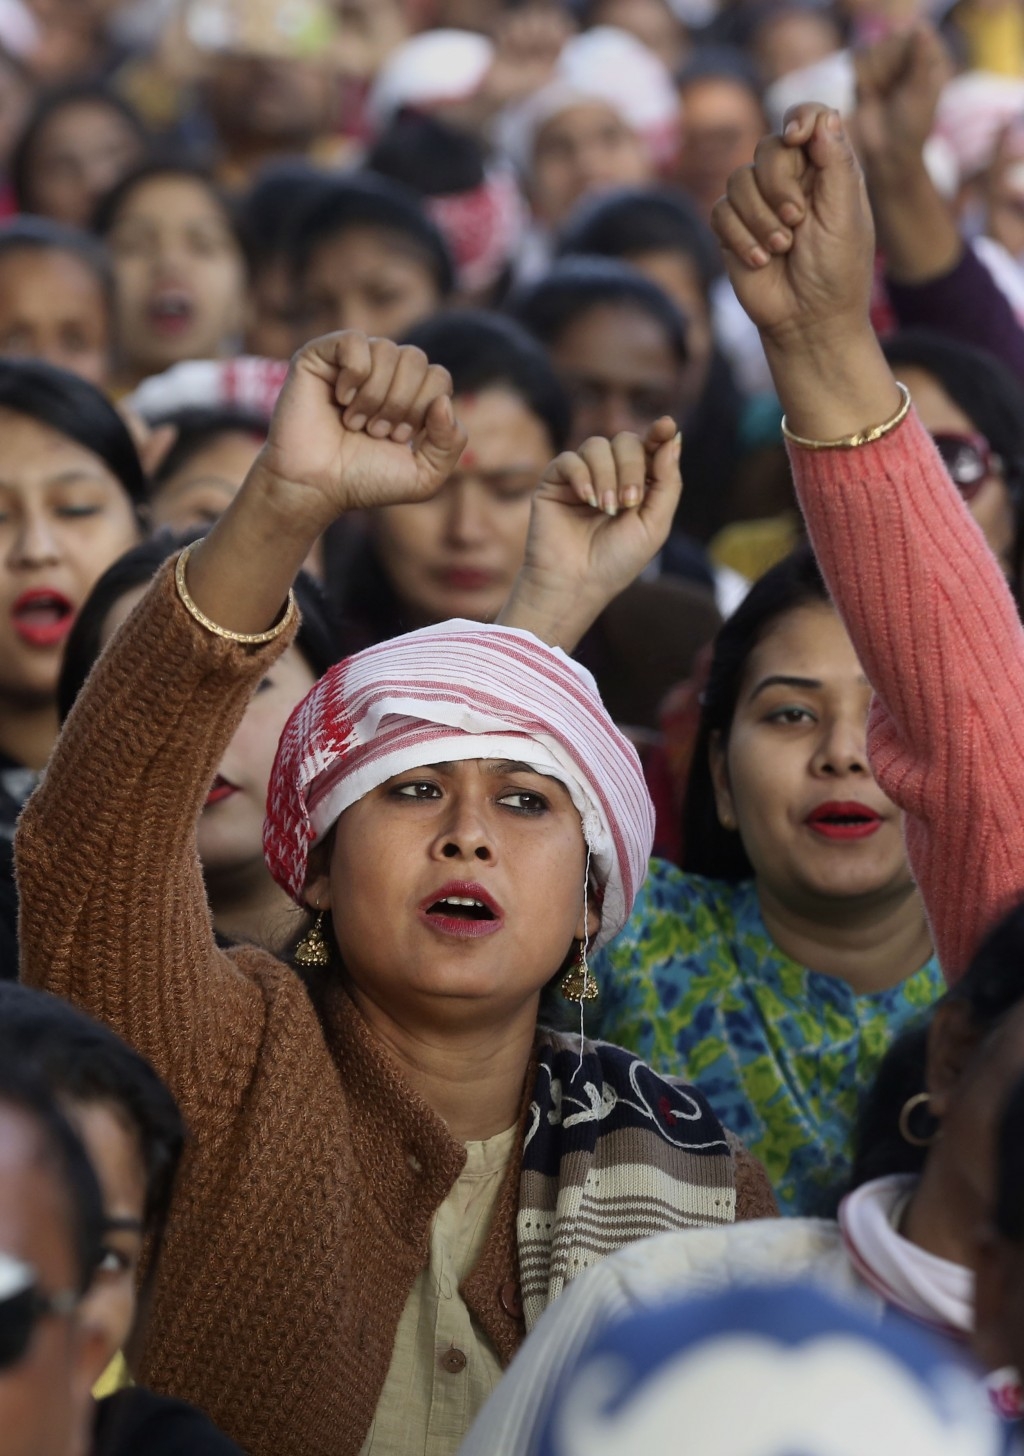 Indians shout slogans during a protest against the Citizenship Amendment Act in Nalbari, India, Friday, Dec. 20, 2019. Police banned public gatherings...